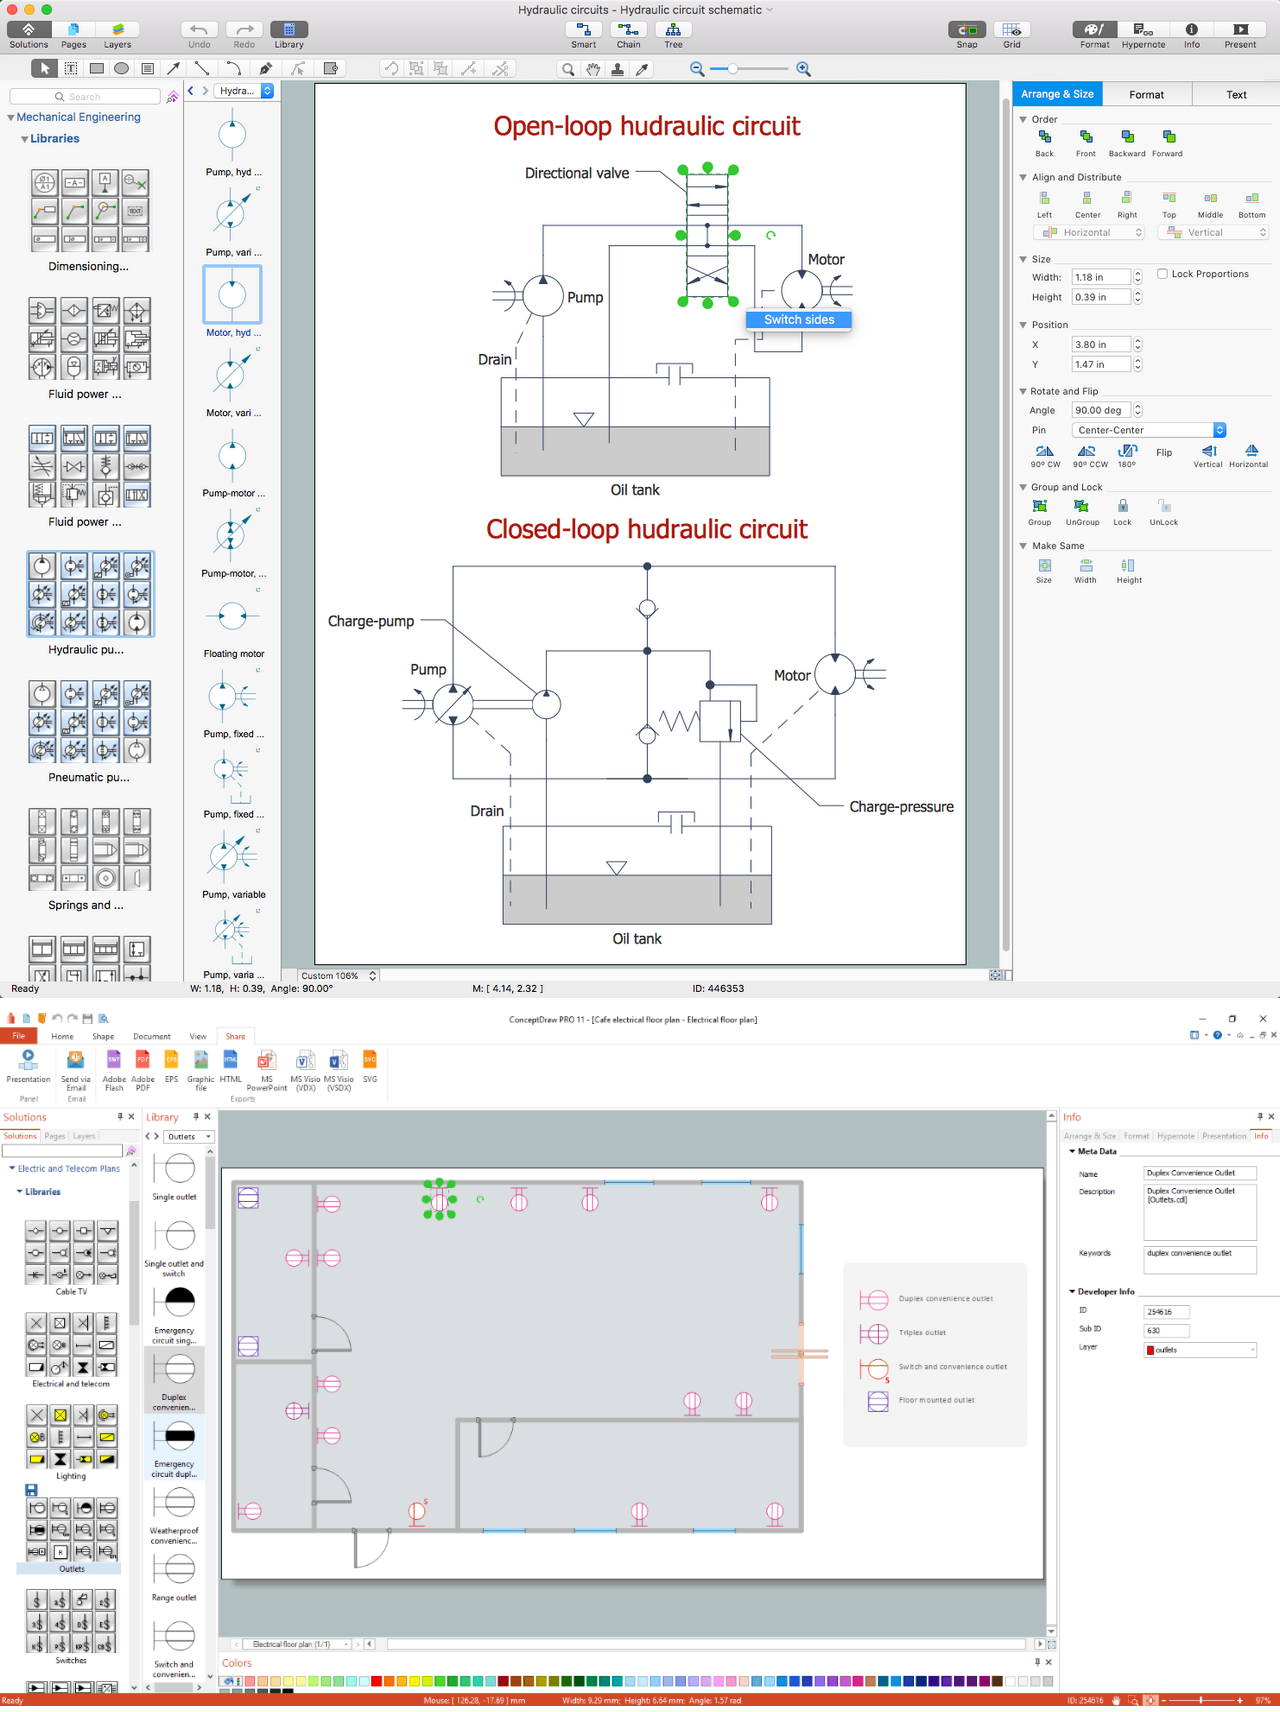 ConceptDraw DIAGRAM software for making mechanic and electrical diagrams for architectural design